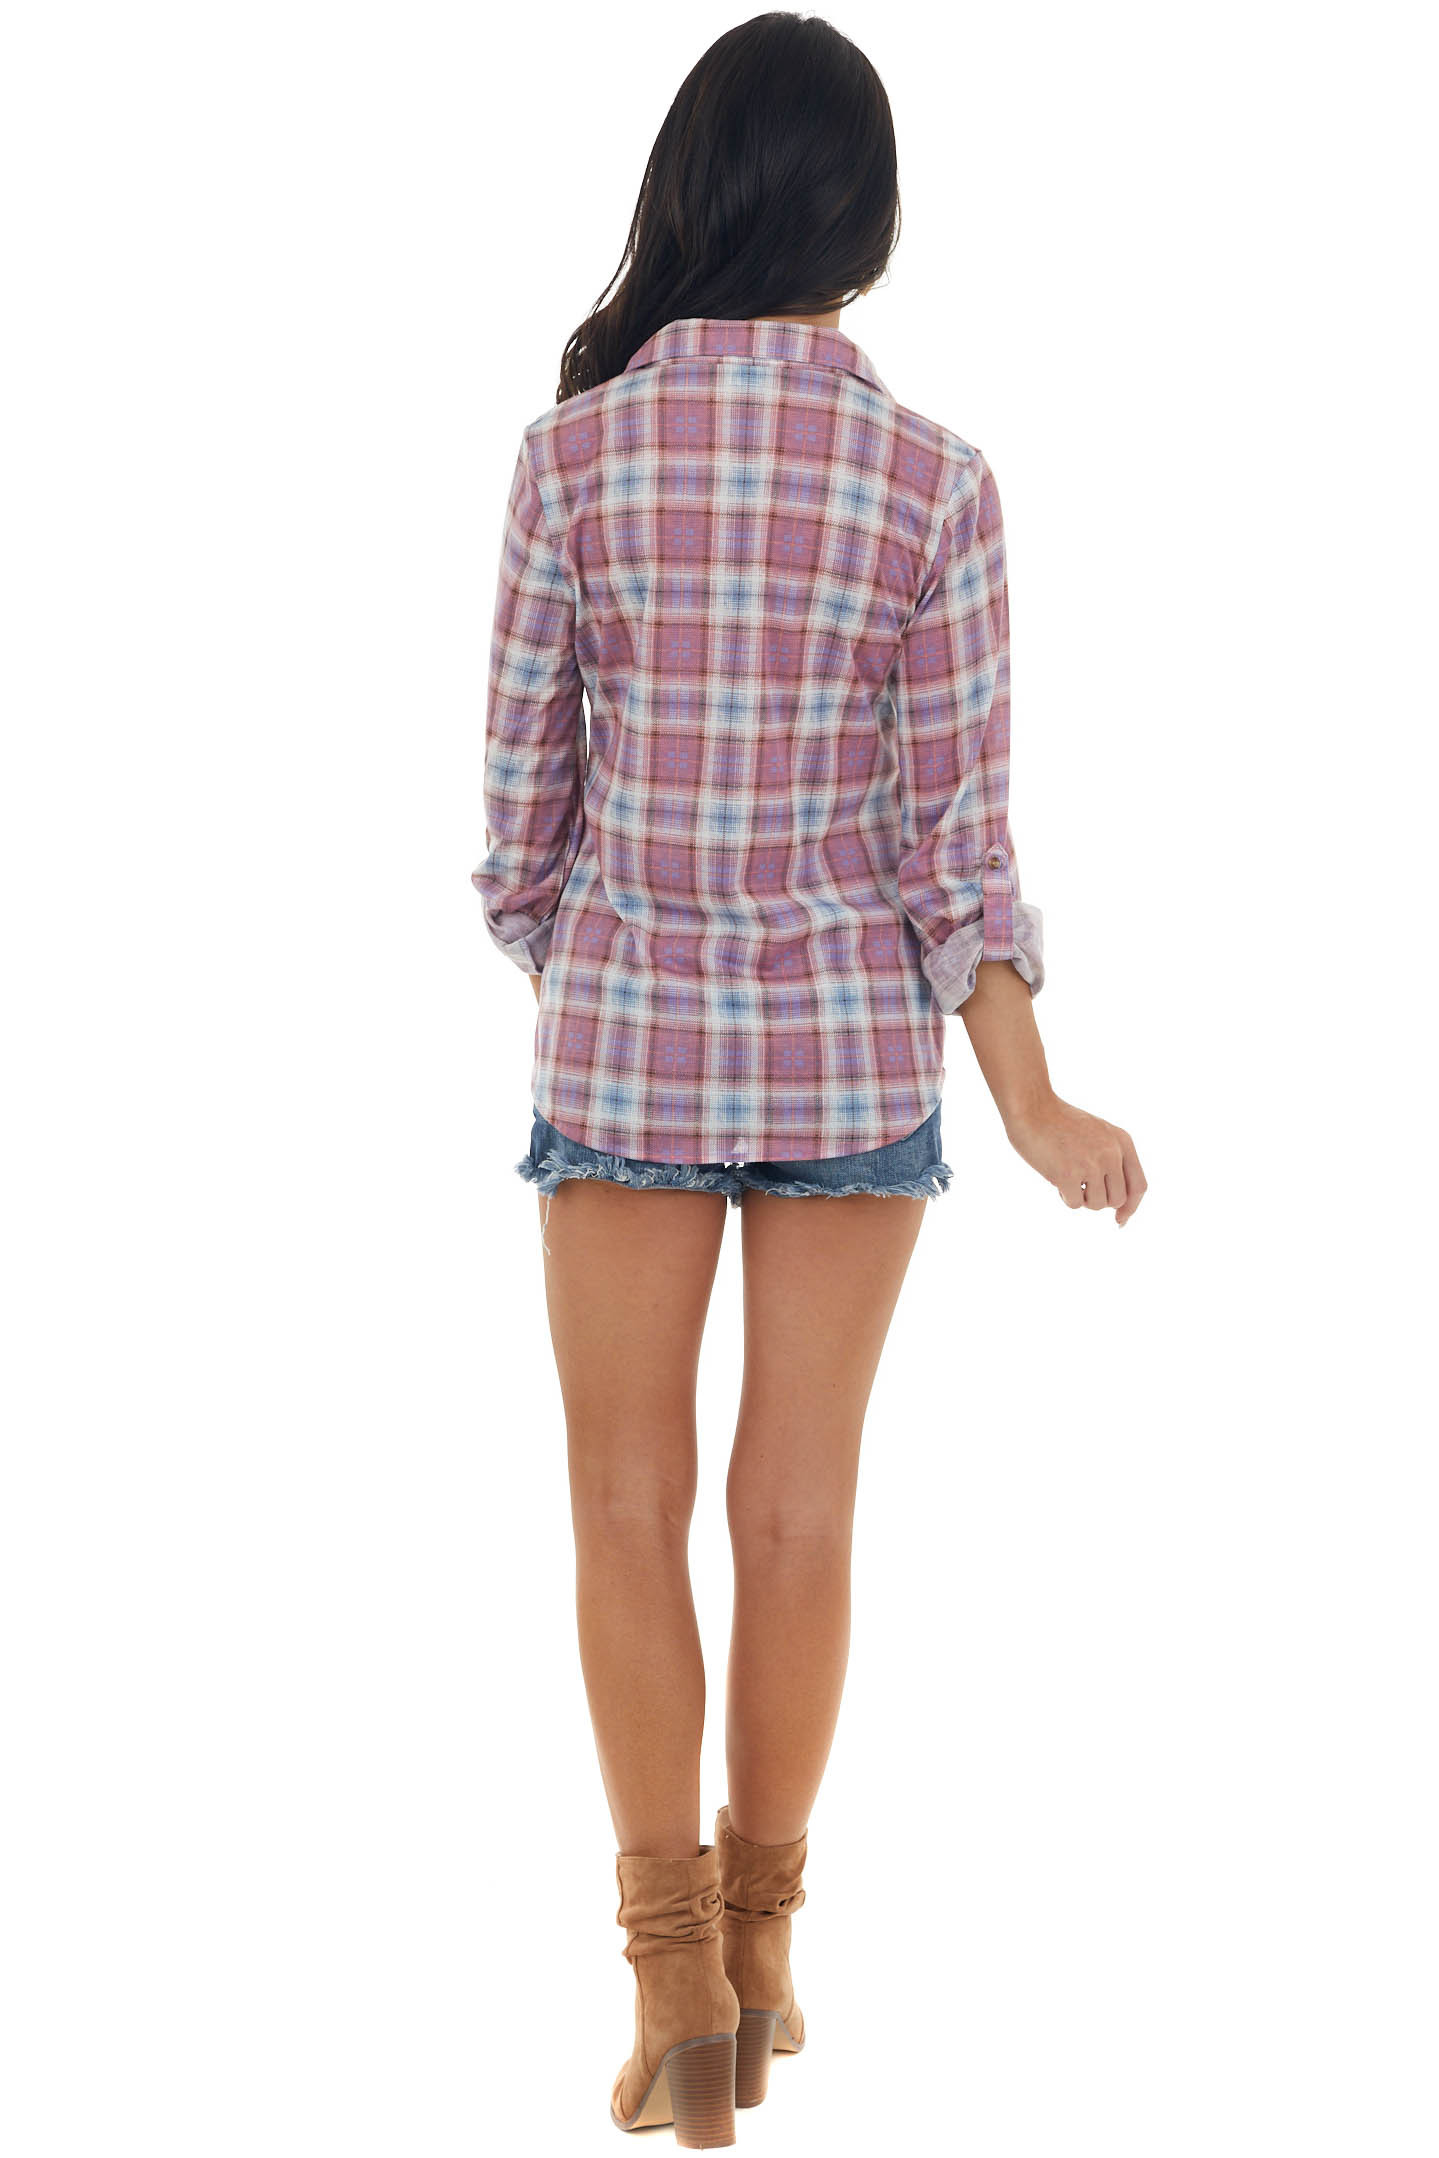 Orchid and Iris Plaid Top with Chest Pocket